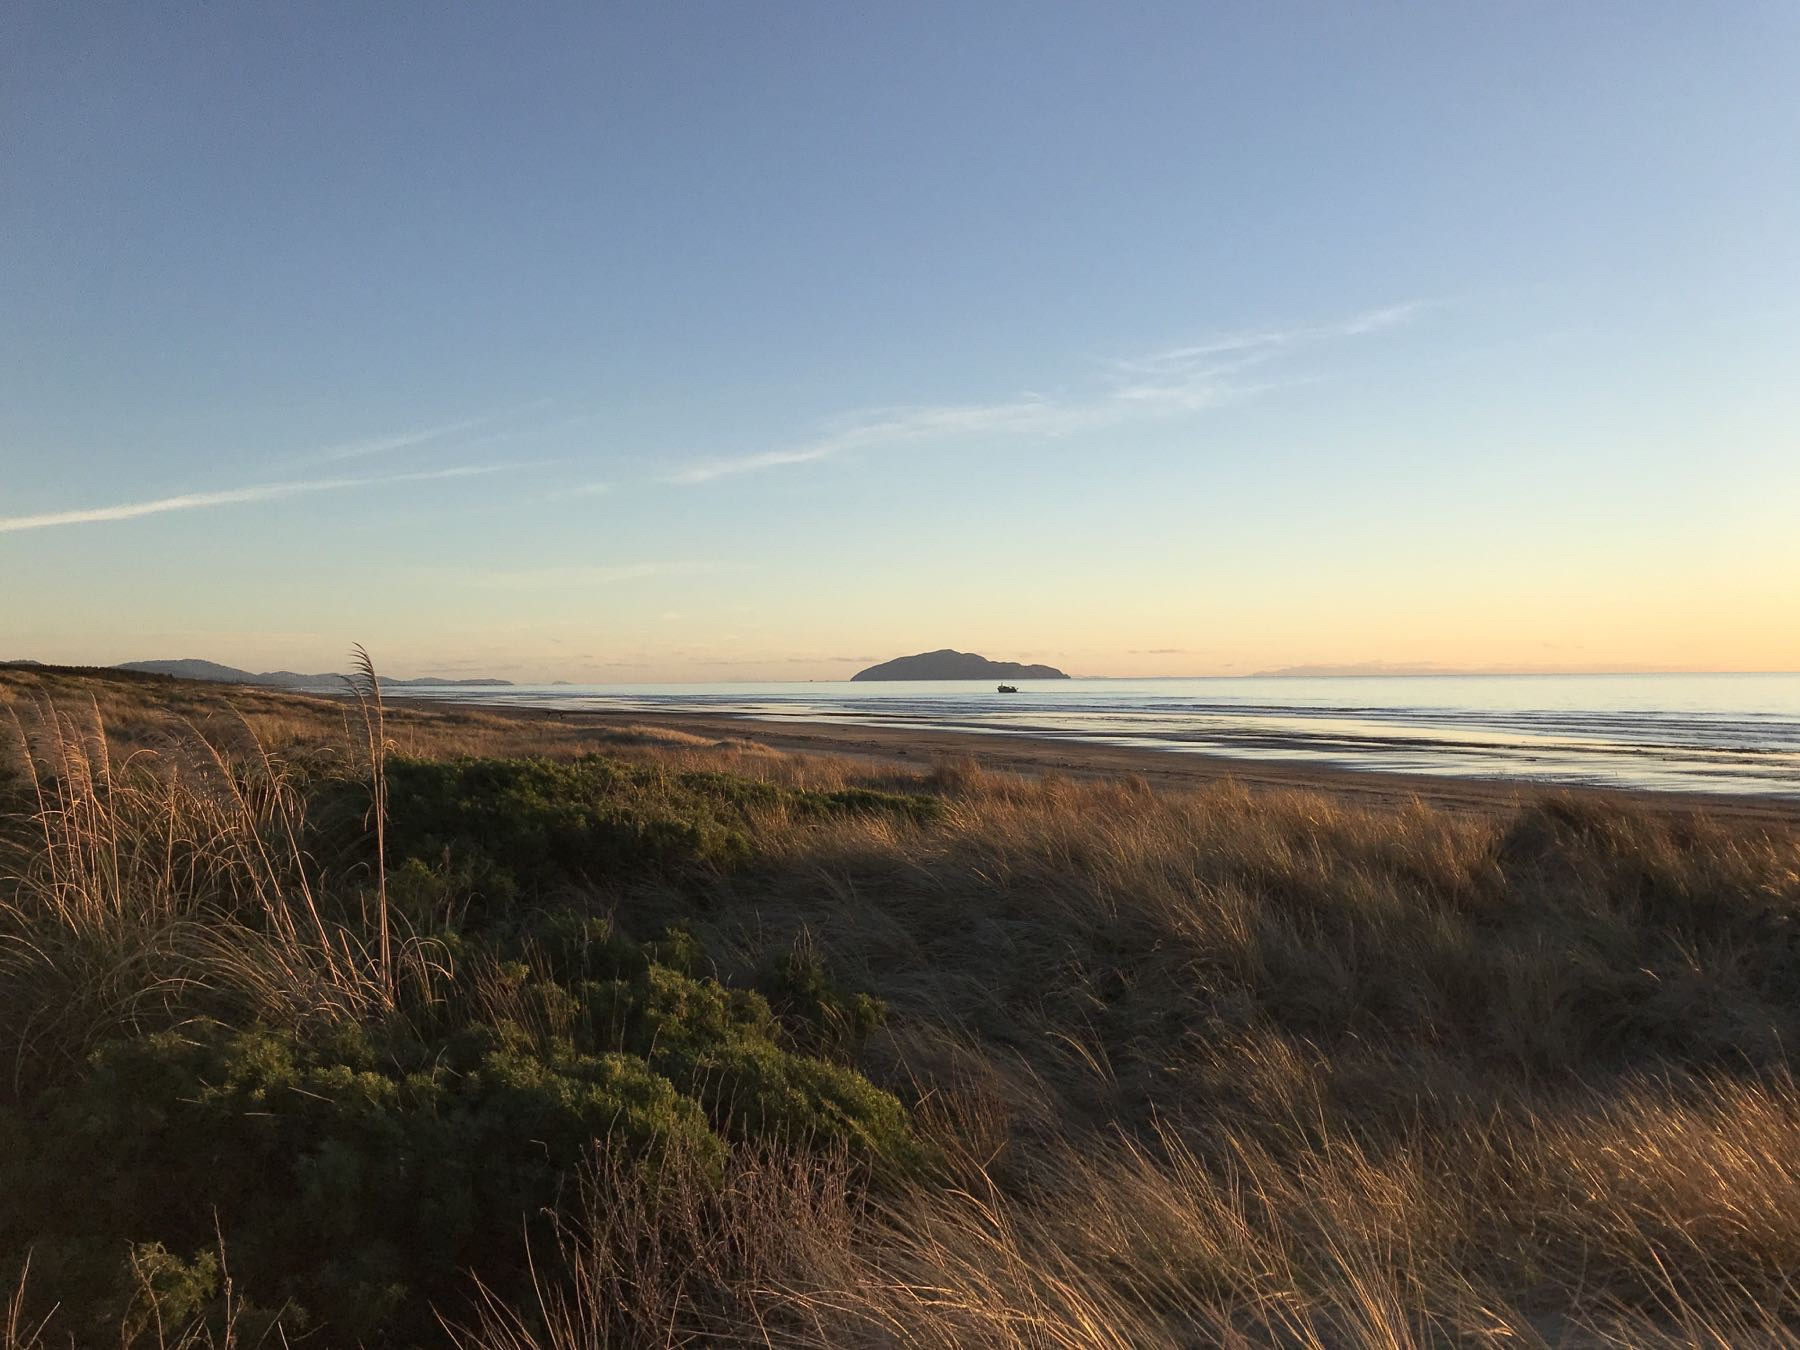 Looking south along the beach, with Kāpiti Island.